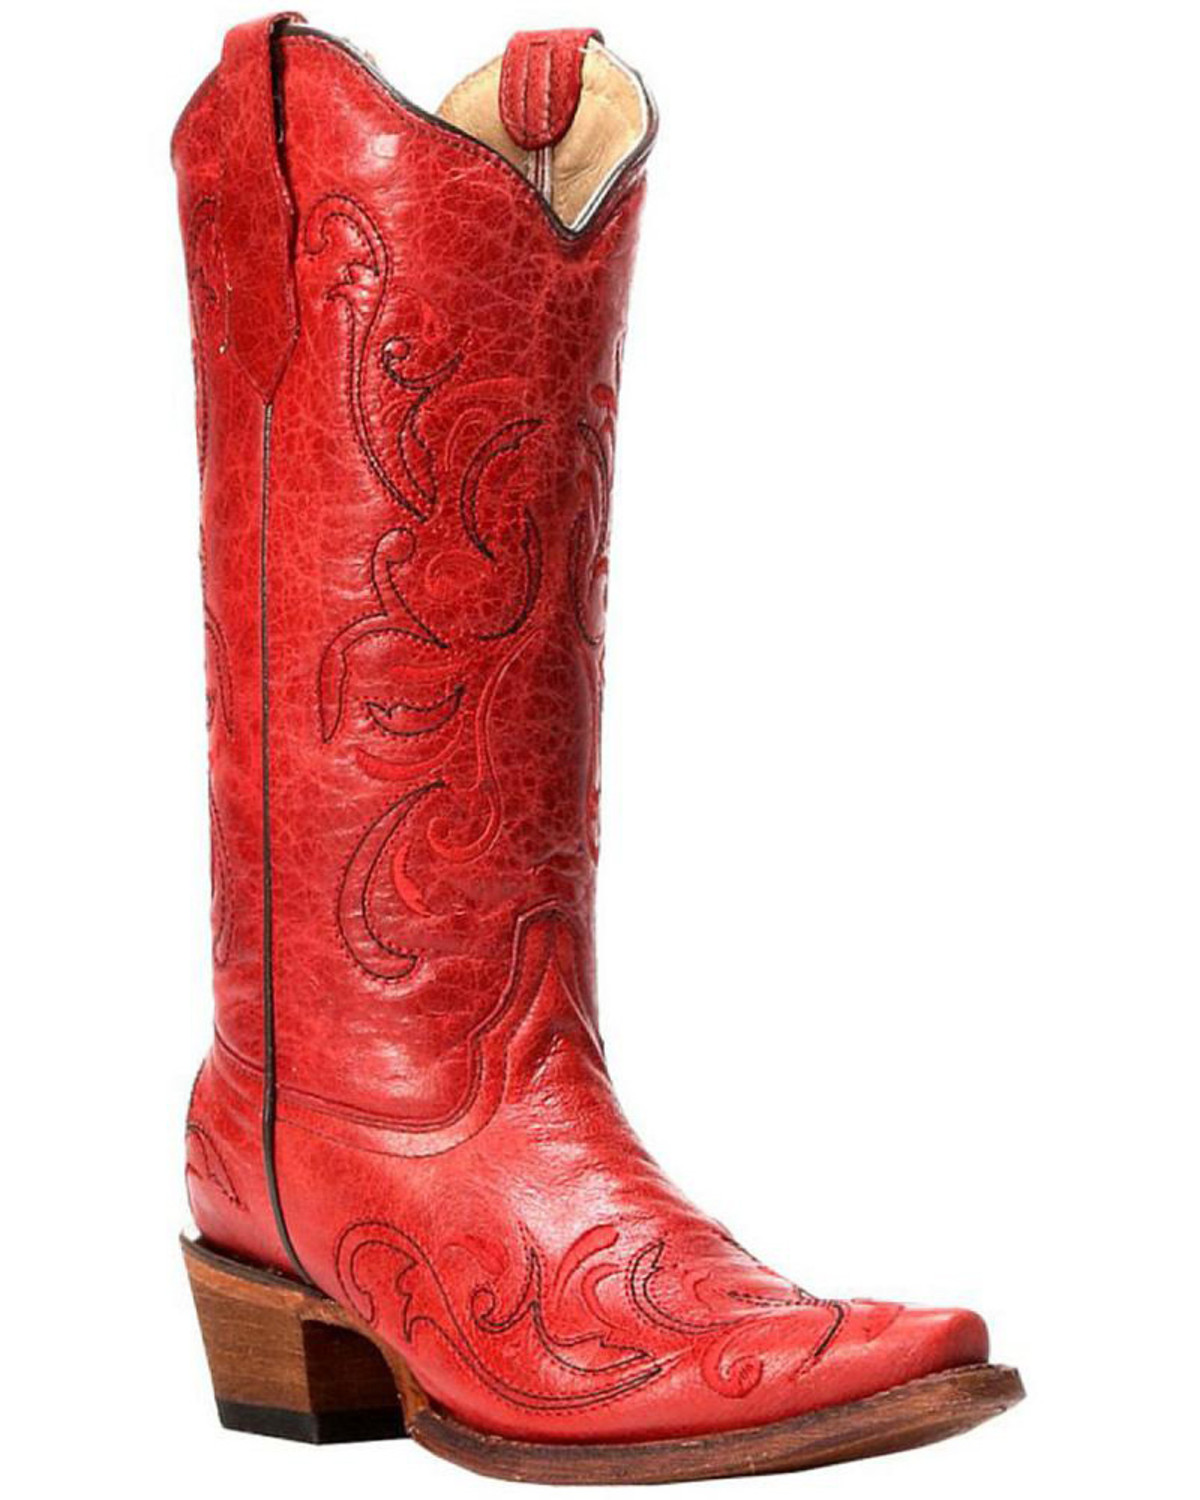 circle g leather boots snip toe country